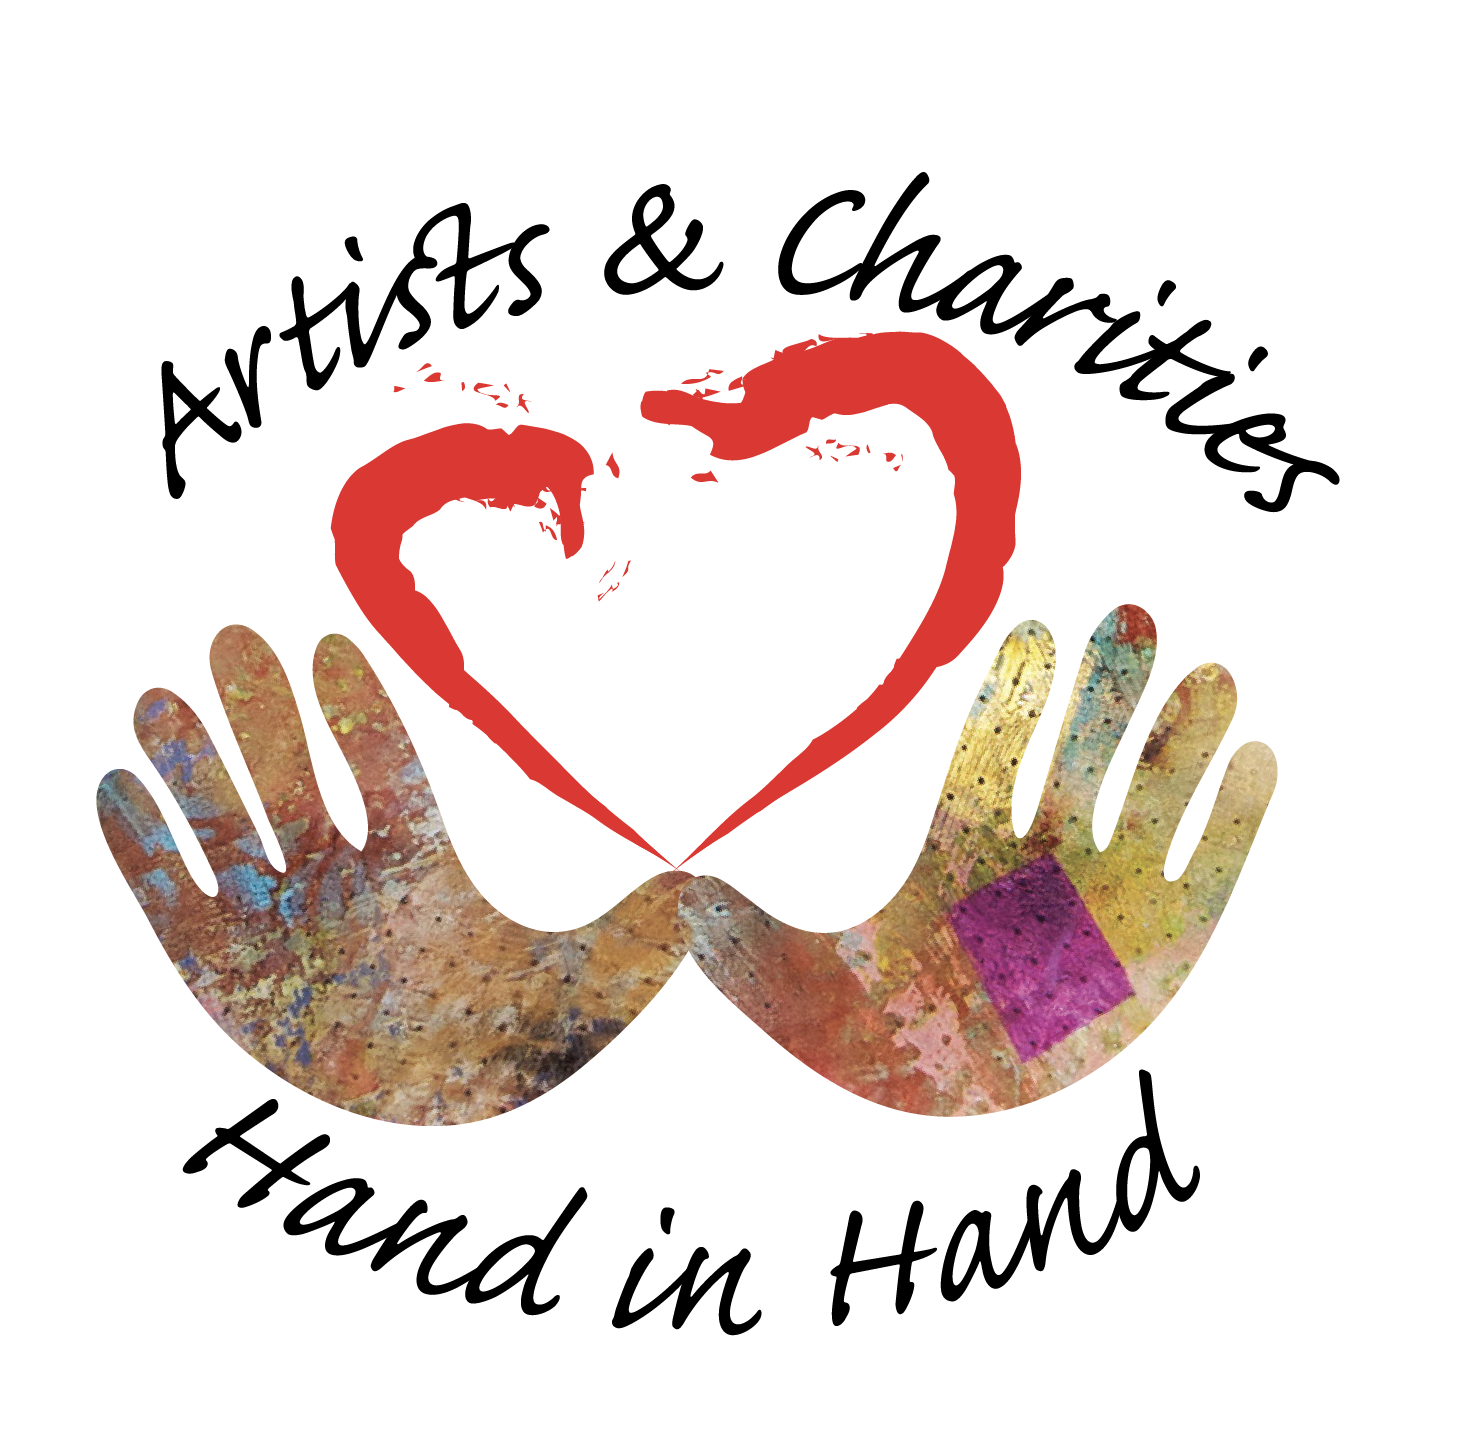 Artists and Charities Hand In Hand's March 31 Event At